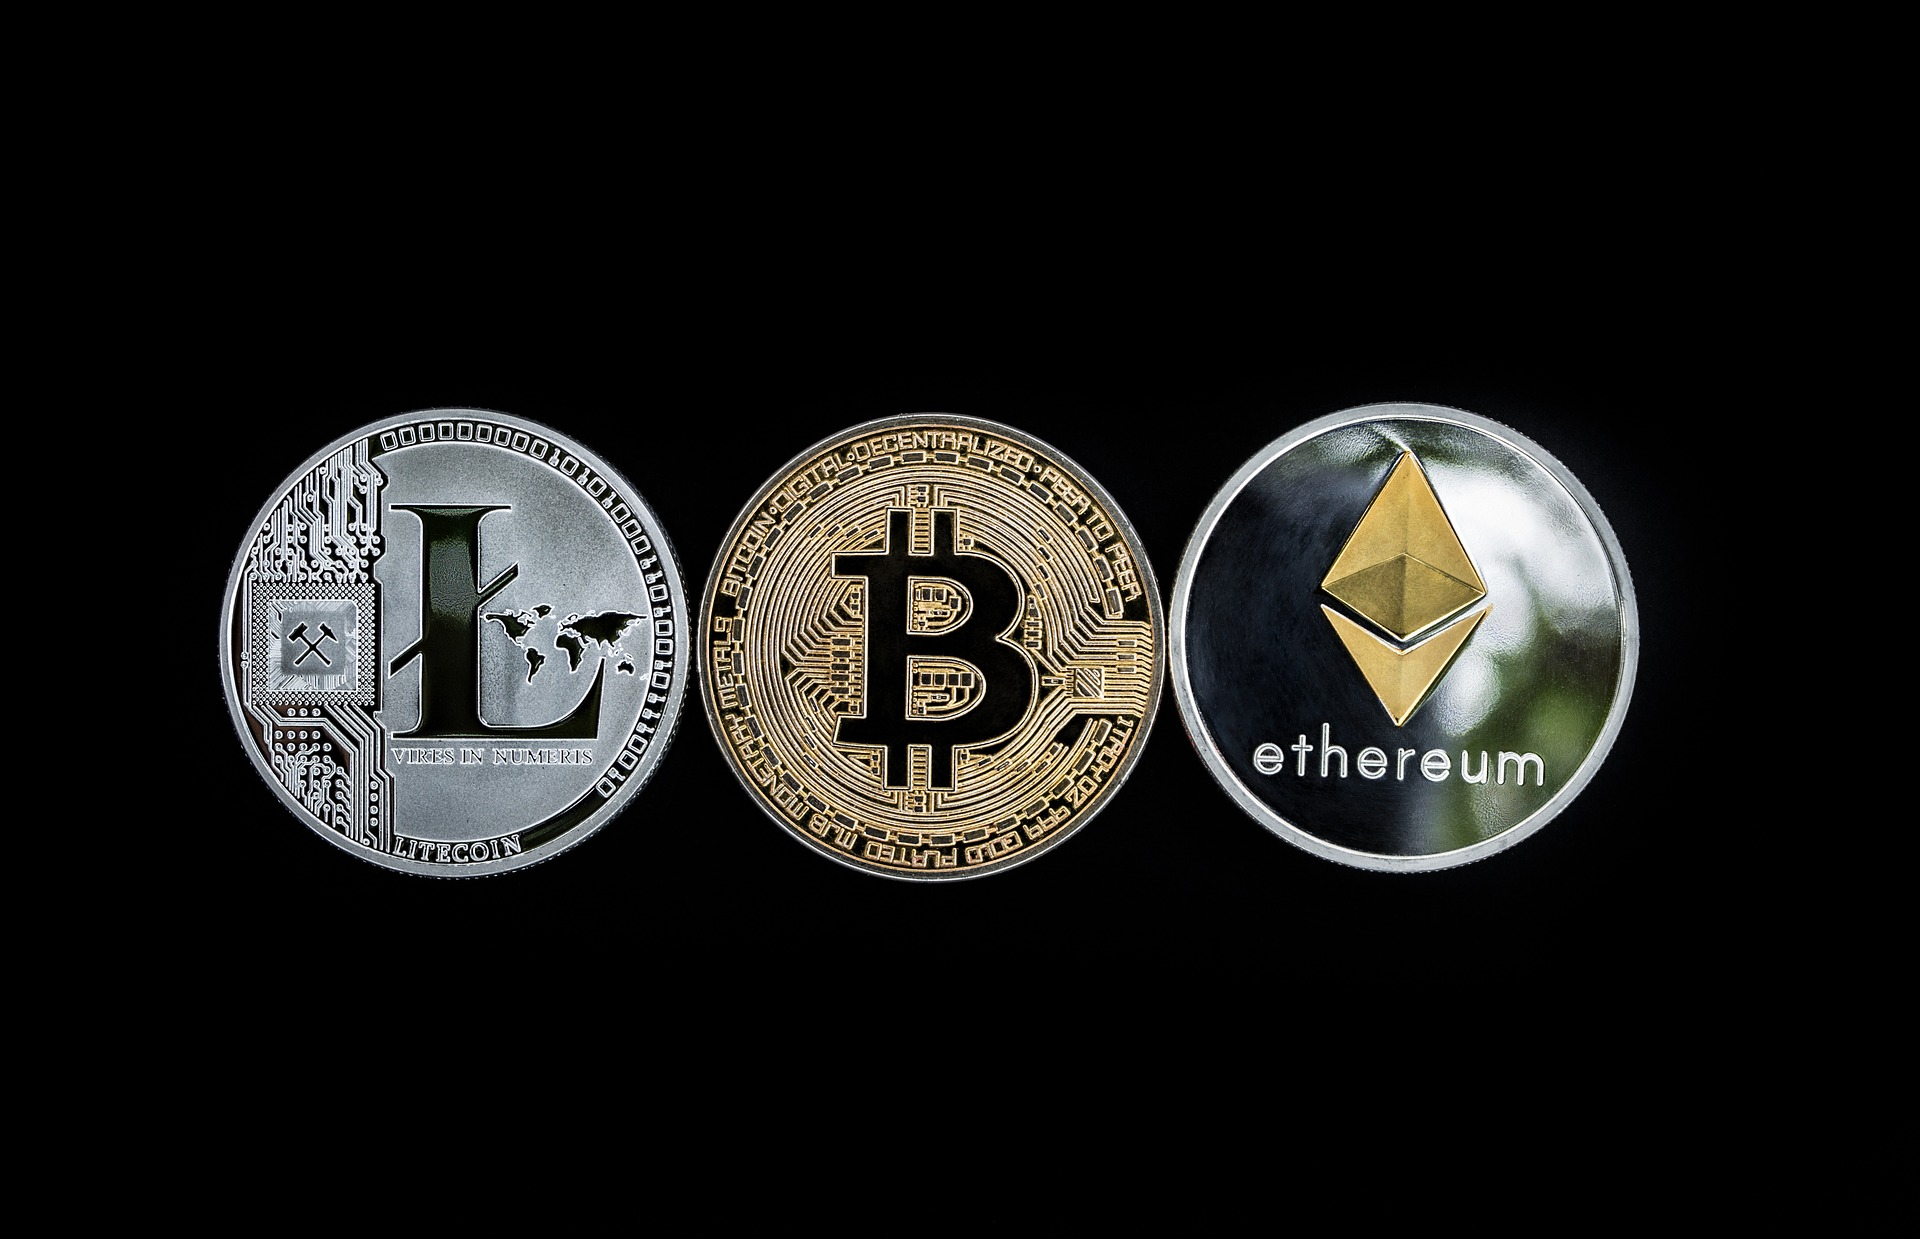 Altcoins Are More Active Than Bitcoin, Data Suggests